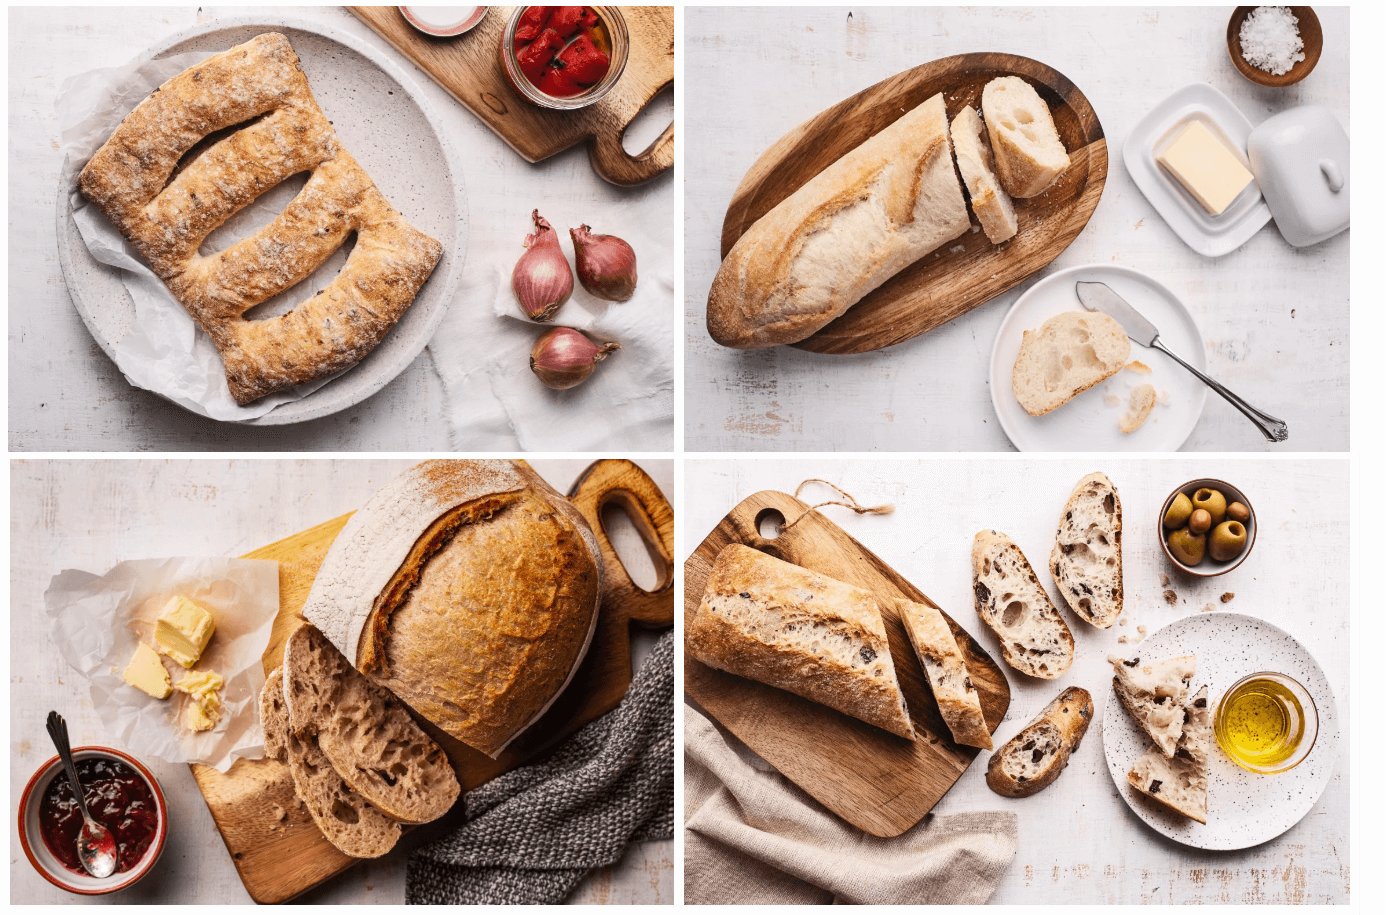 4 images of Goodfood ready to bake bread options that are baked and sliced